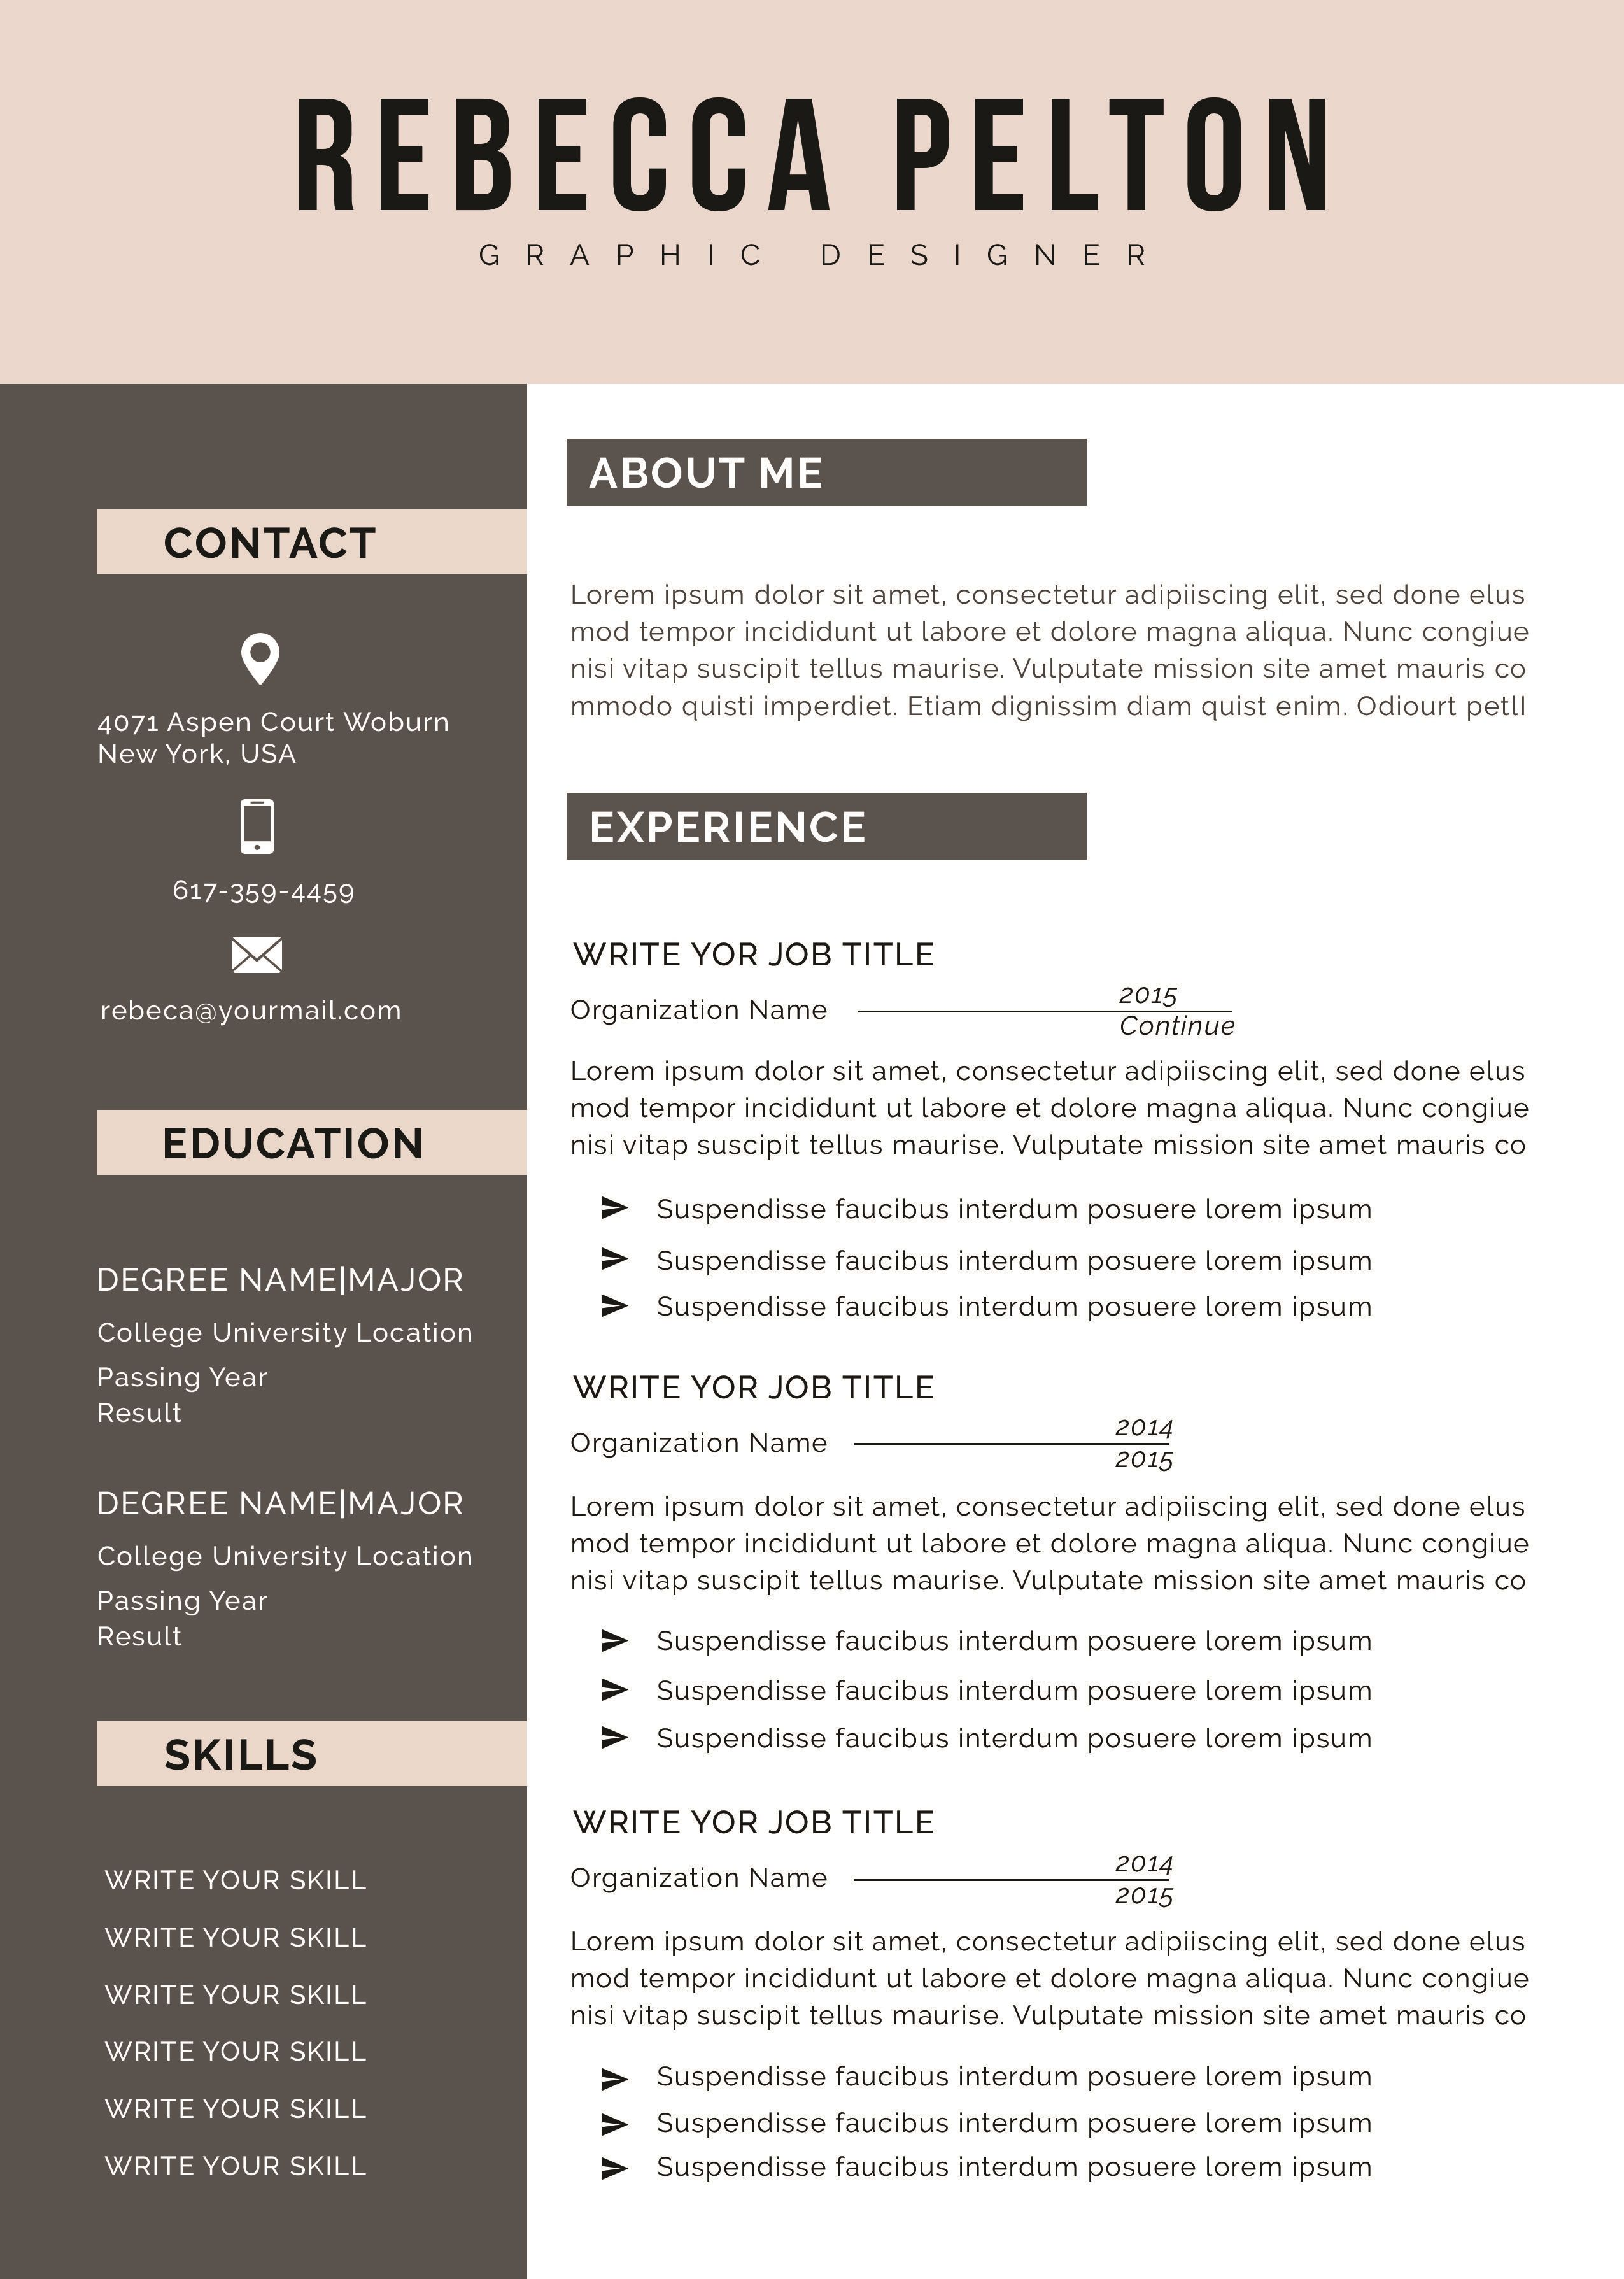 000 Awesome Professional Cv Template Free 2019 Inspiration  Resume DownloadFull